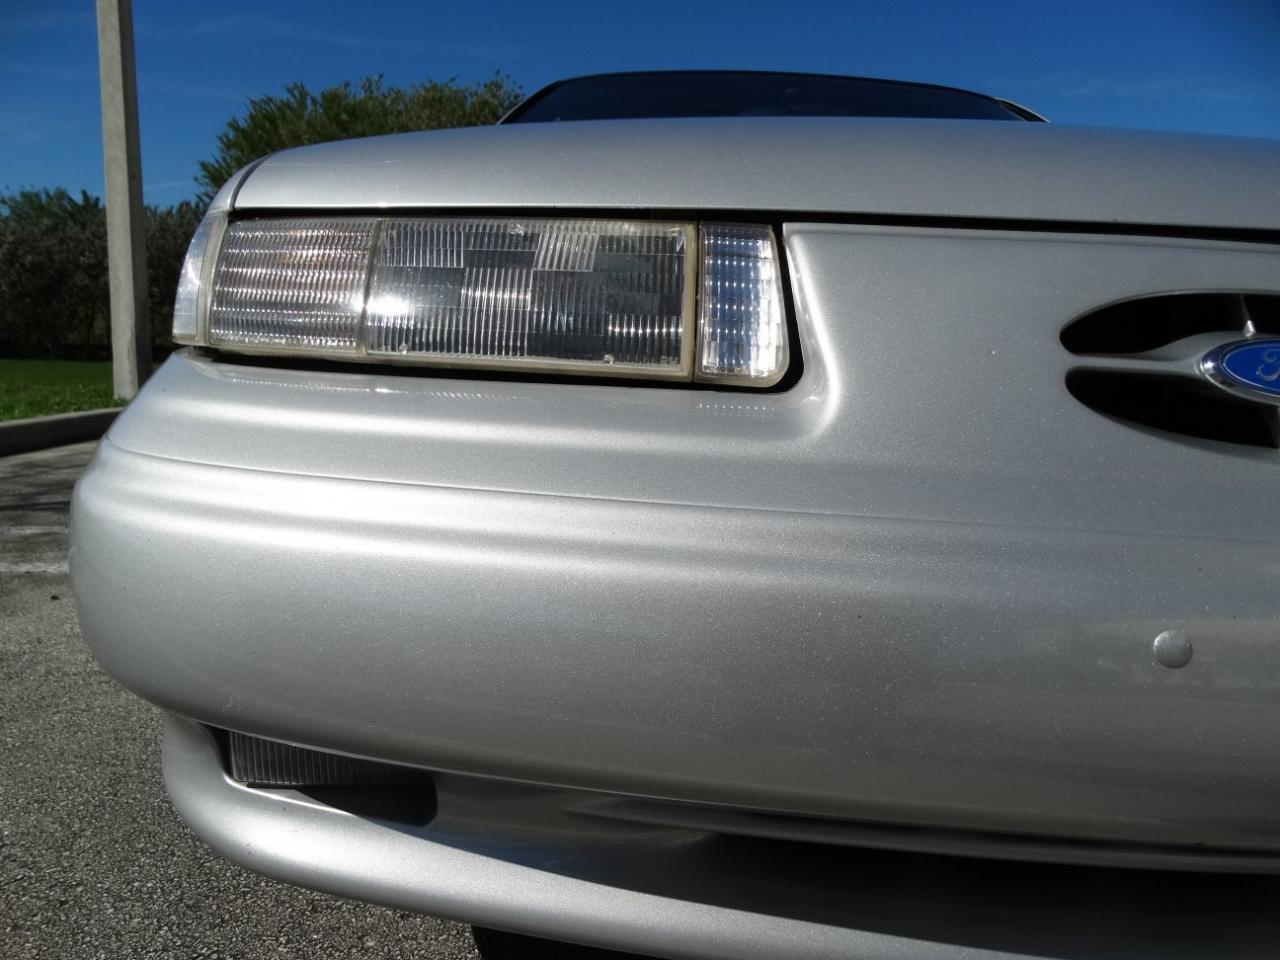 Large Picture of '93 Ford Taurus - $9,995.00 Offered by Gateway Classic Cars - Fort Lauderdale - KEXL